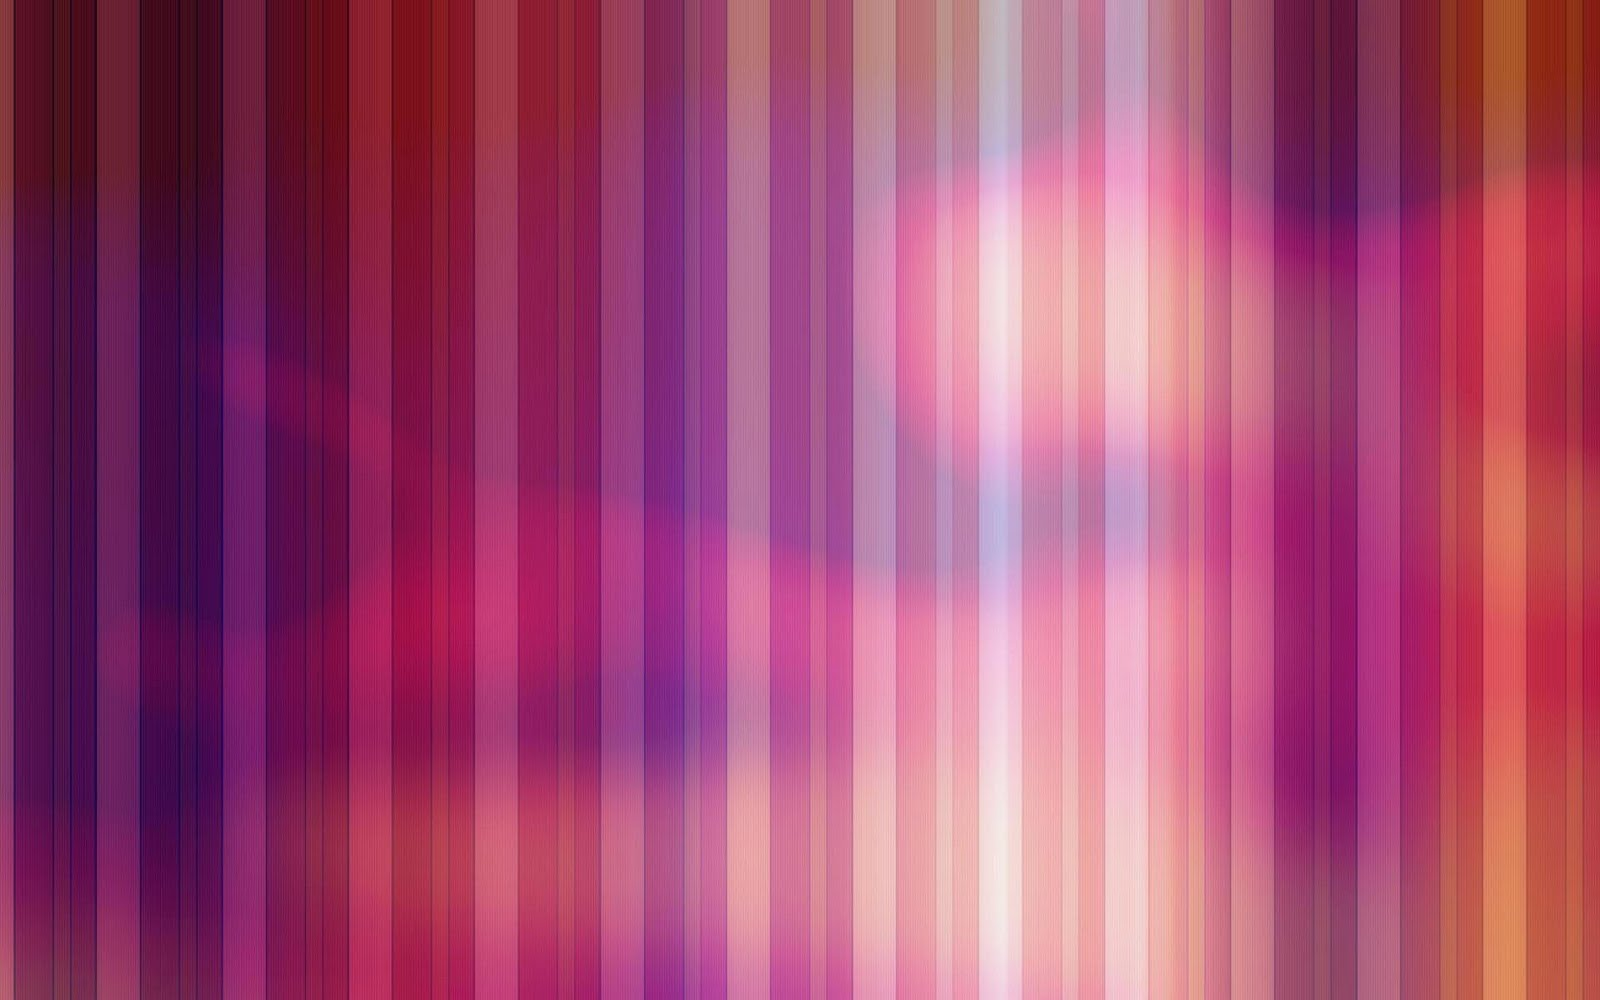 Pink striped wallpaper hd - Best Top Desktop Abstract Pattern Wallpapers Hd Wallpaper Pattern Pictures And Images 3